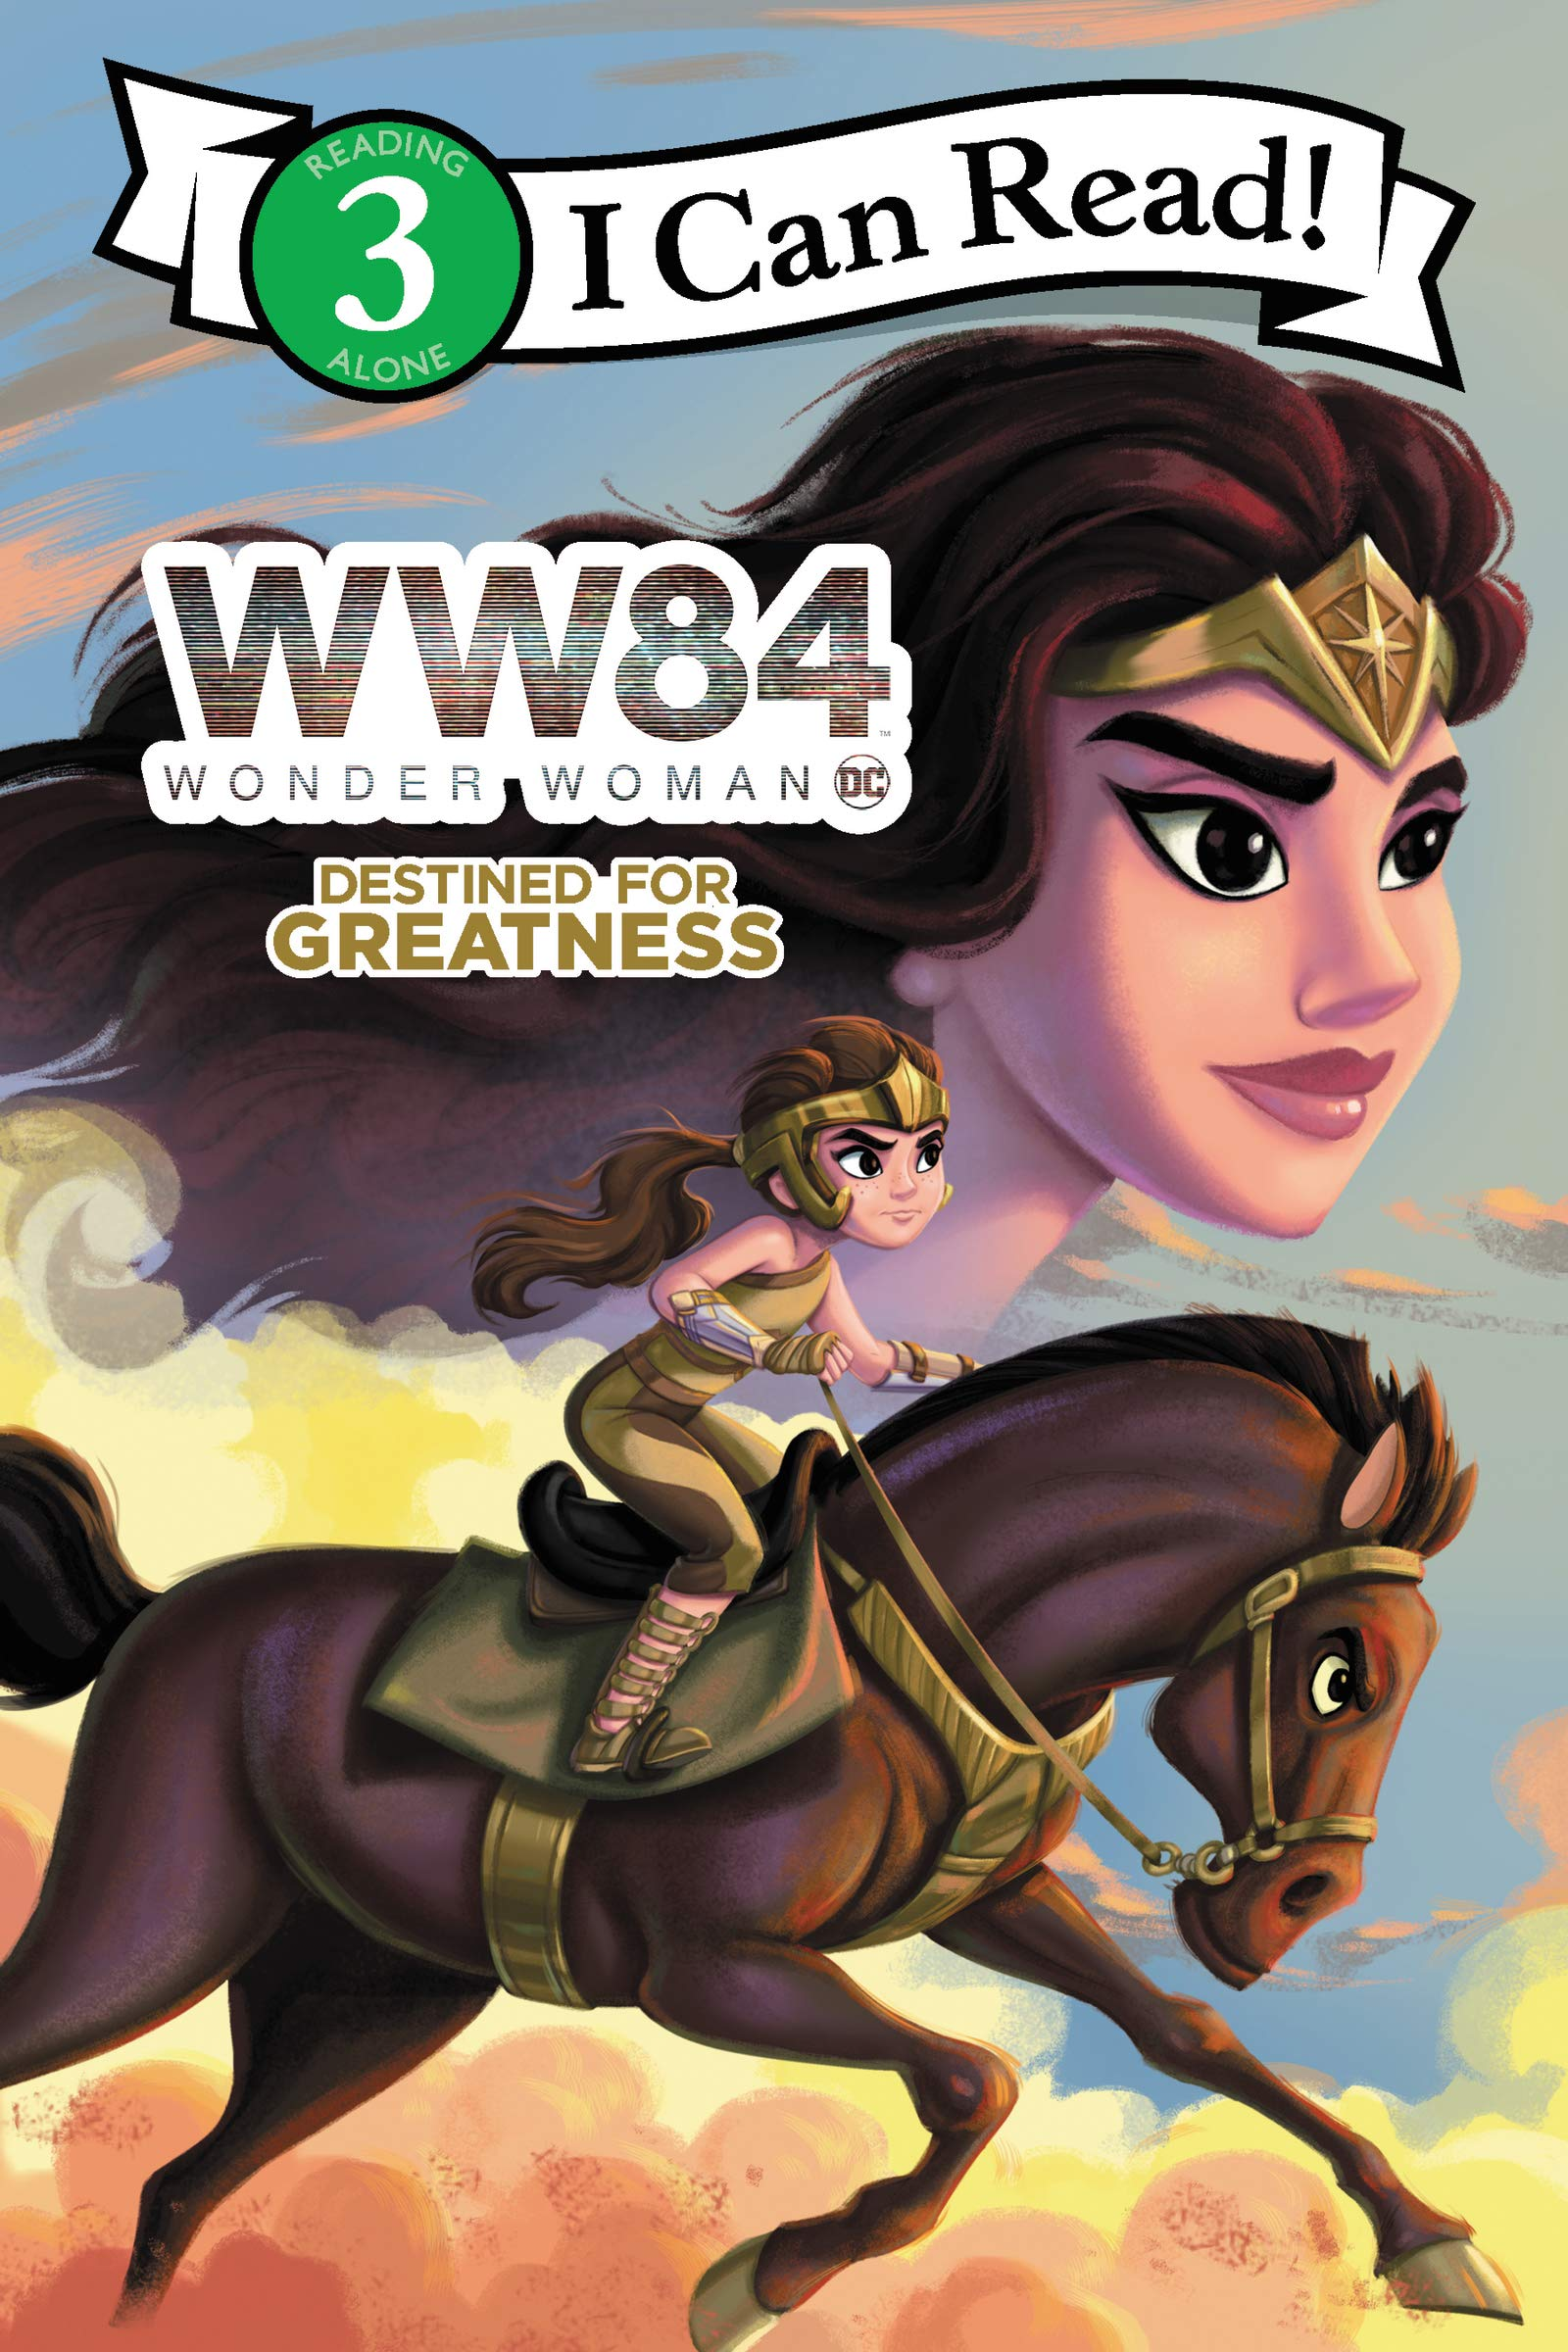 Wonder Woman 1984: Destined for Greatness 1 - Wonder Woman 1984: Destined for Greatness